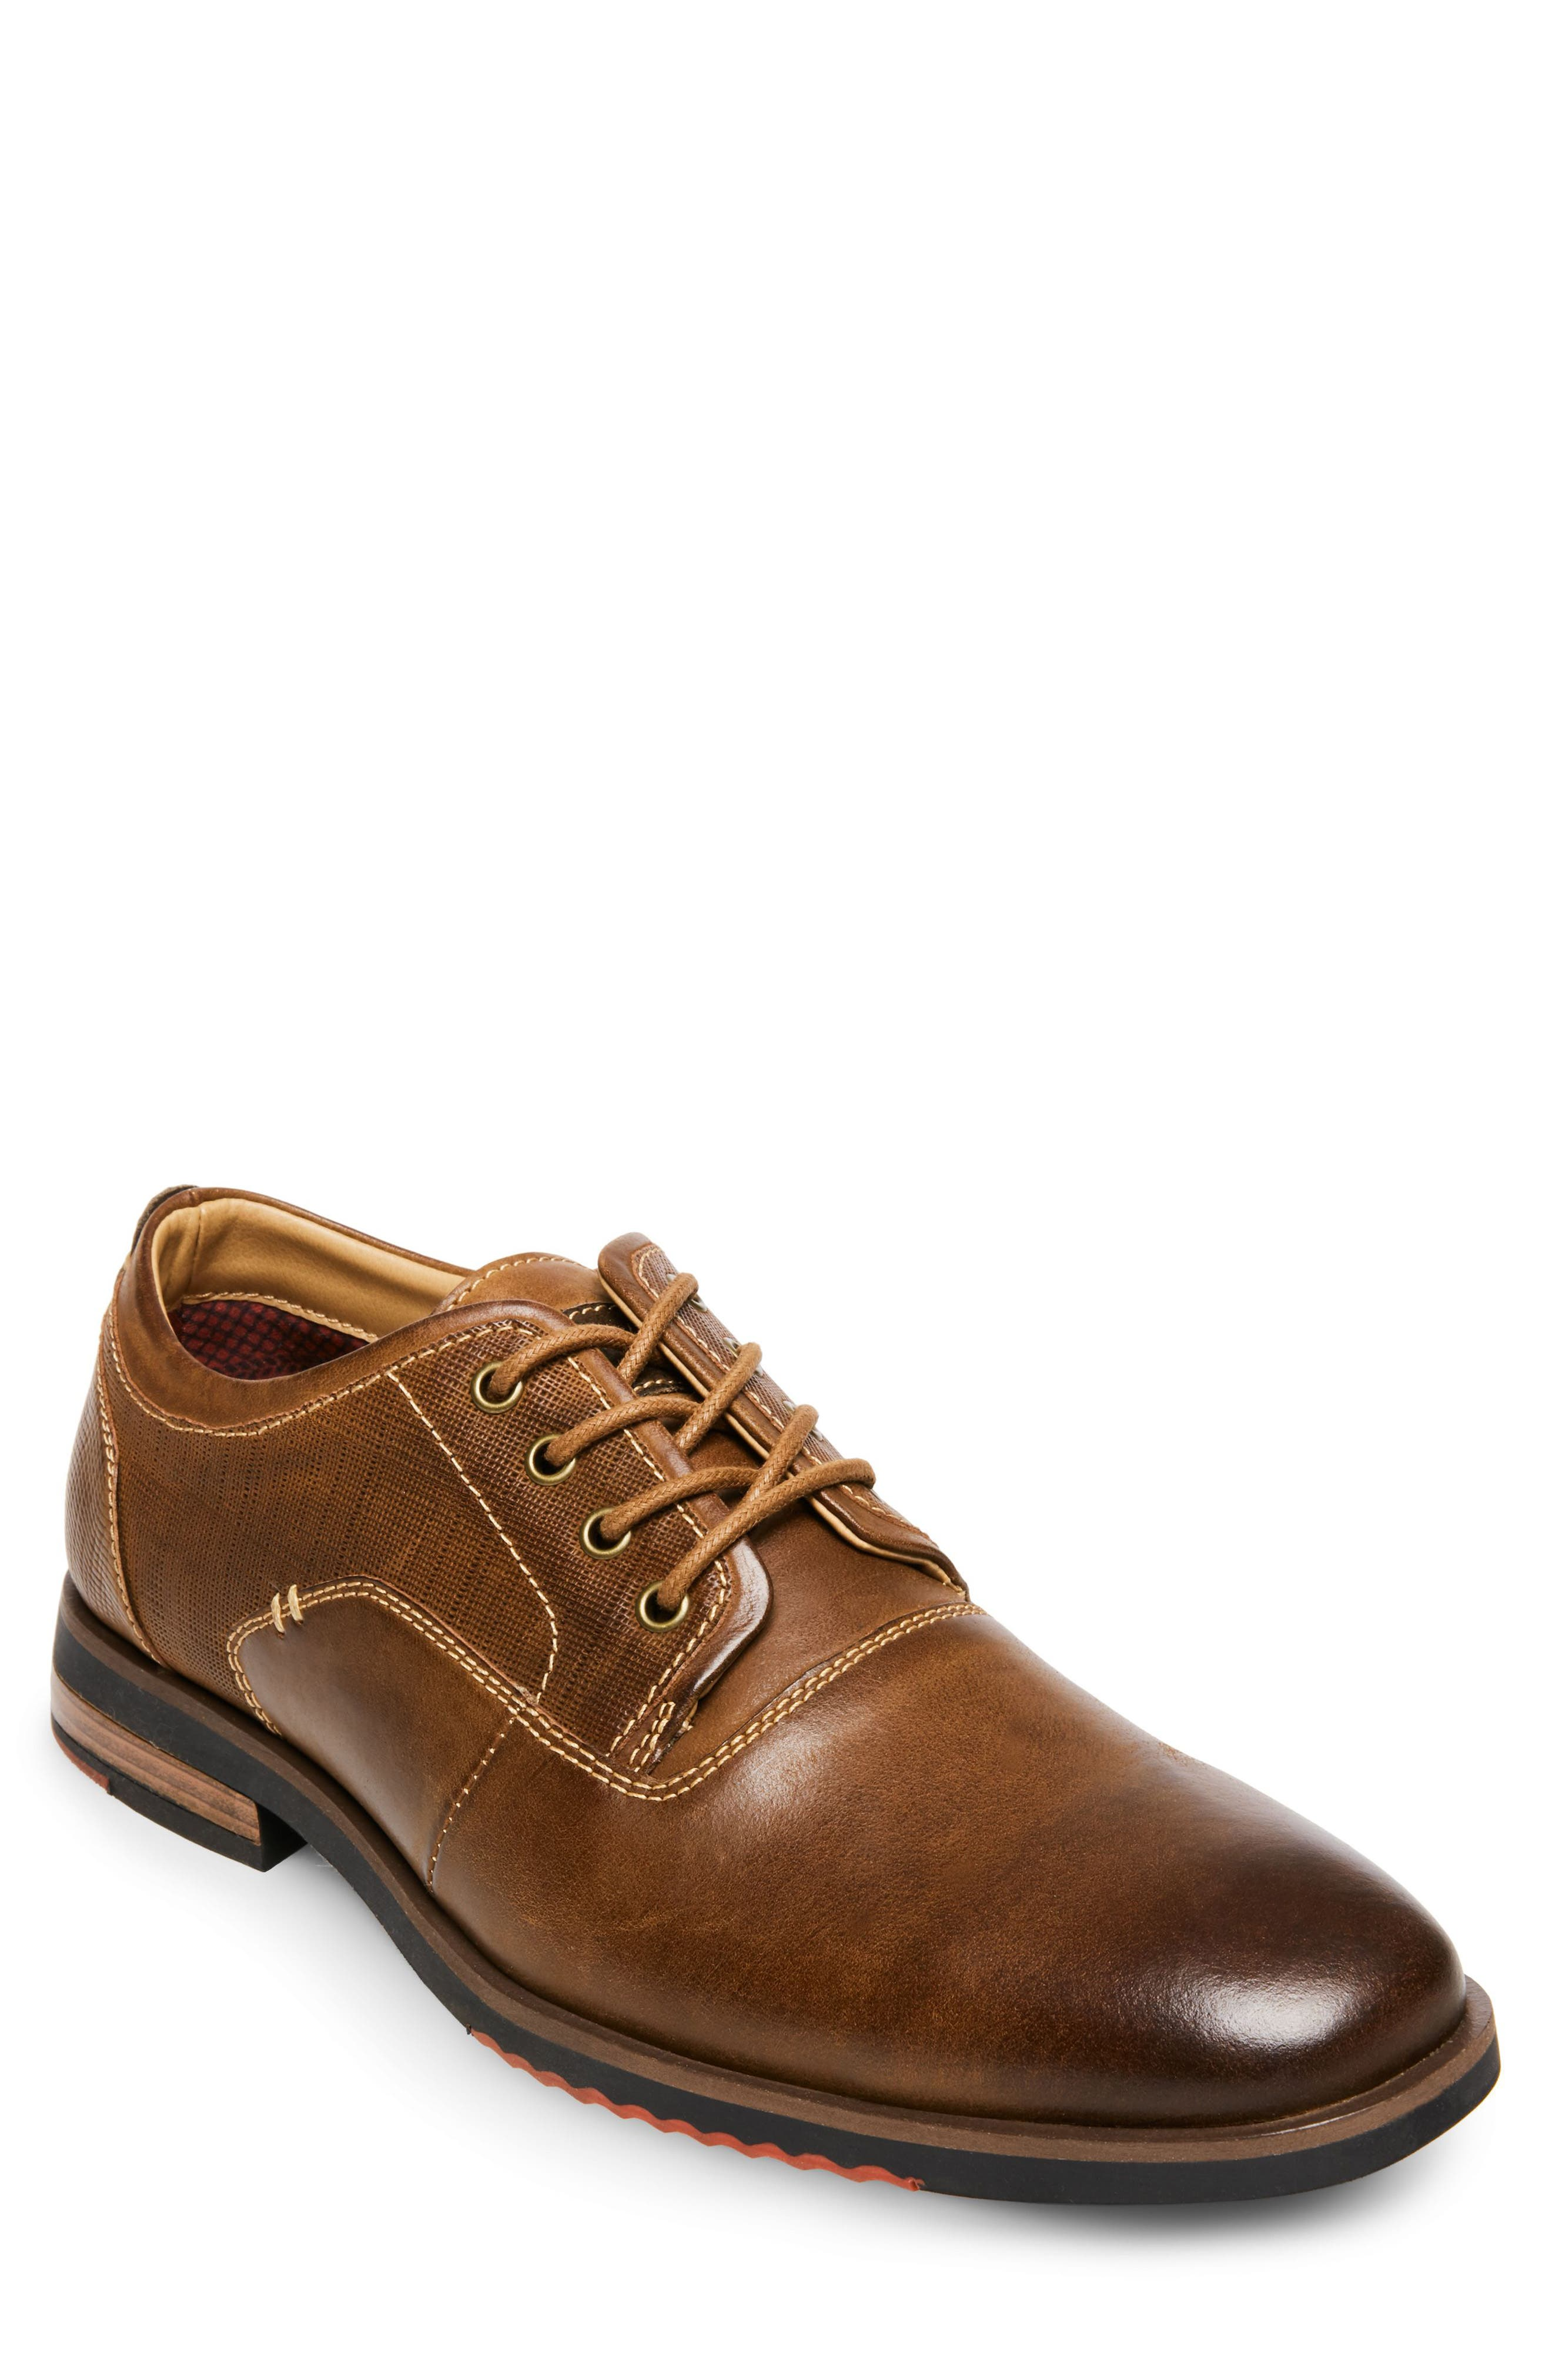 Mallet Textured Derby,                             Main thumbnail 1, color,                             Dark Tan Leather